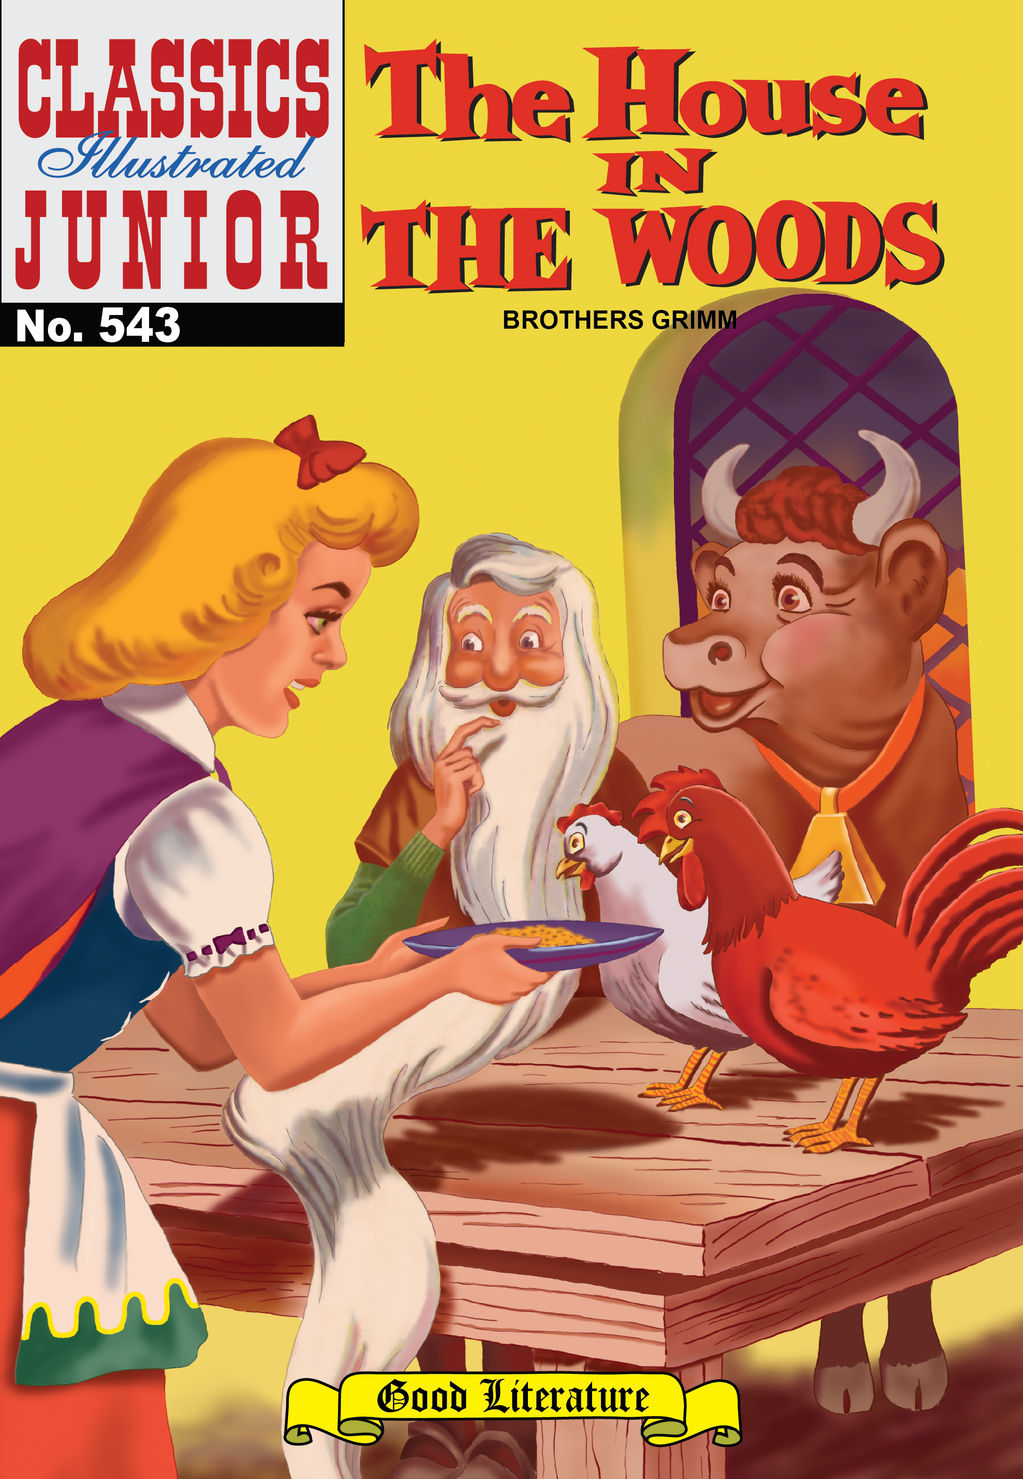 House in the Woods - Classics Illustrated Junior #543 By: Grimm Brothers